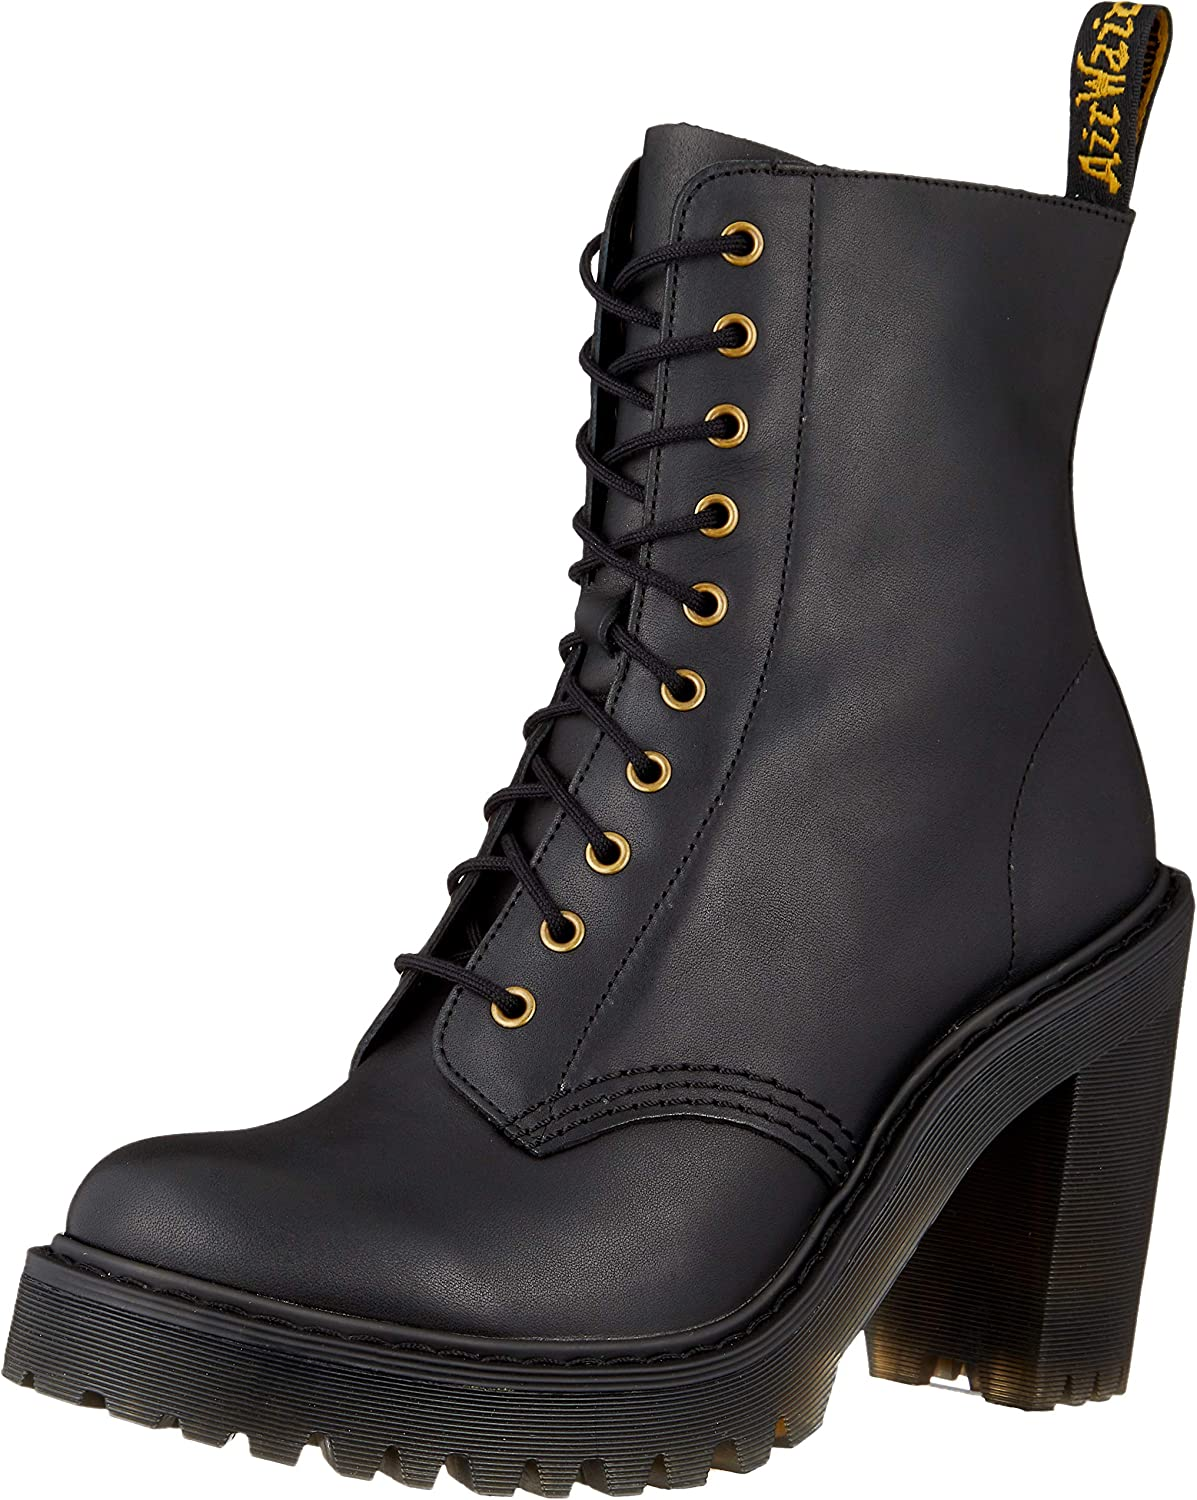 Dr. Martens DR MARTENS BOOTS & BOOTIES Nero